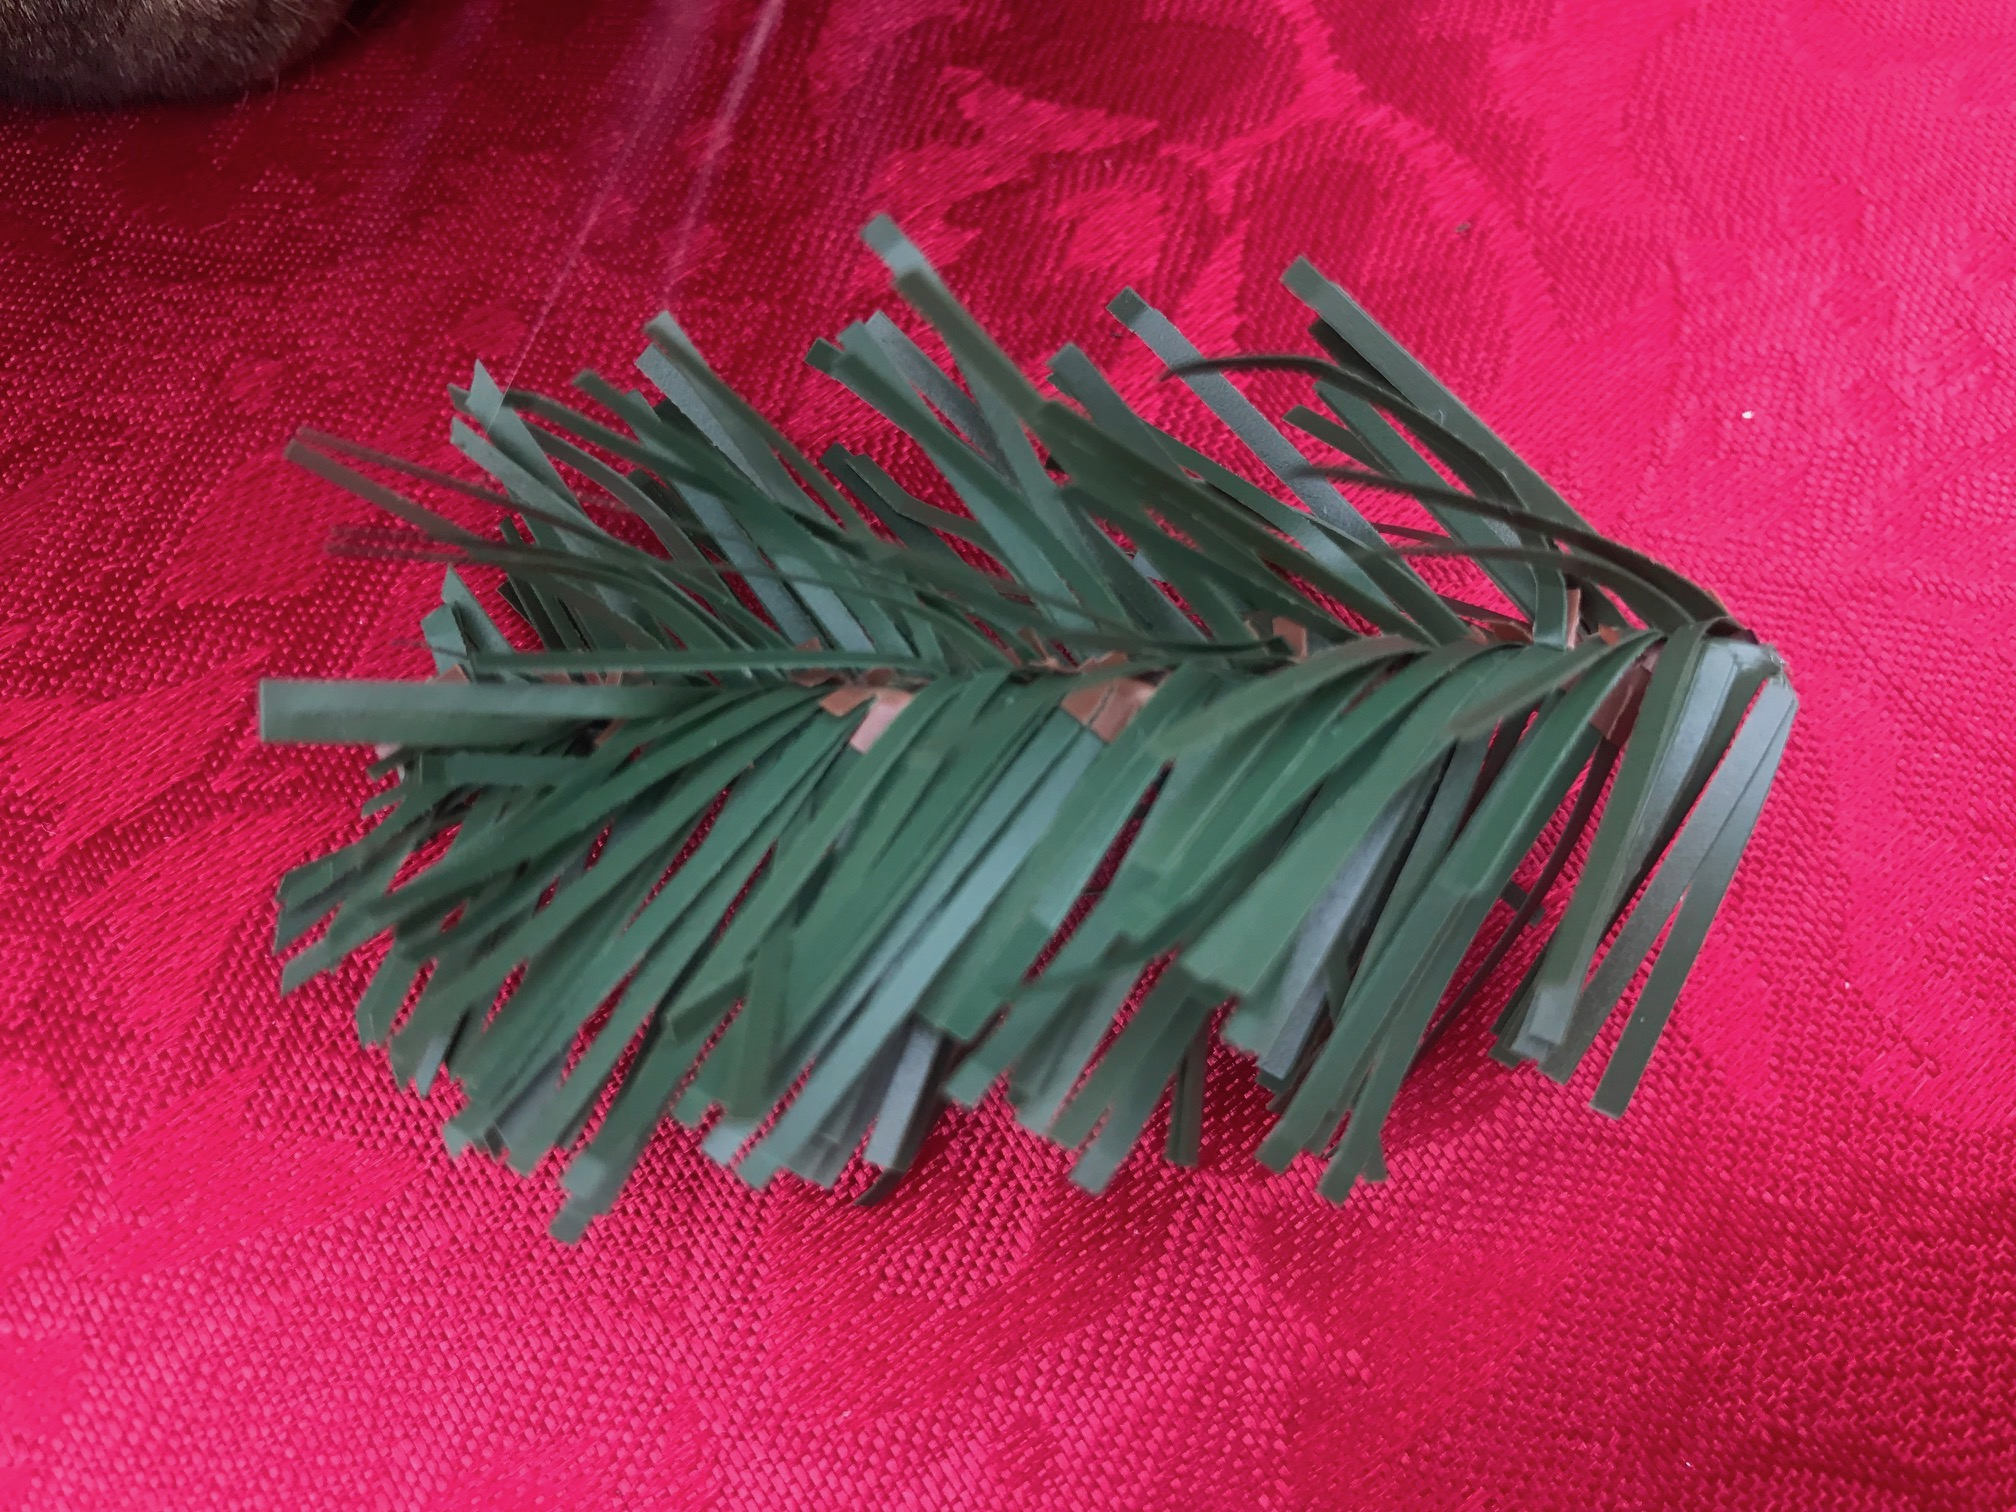 Artificial GE Pre-Lit Christmas Tree Purchased c. 2016 from Home Depot: Lead Free